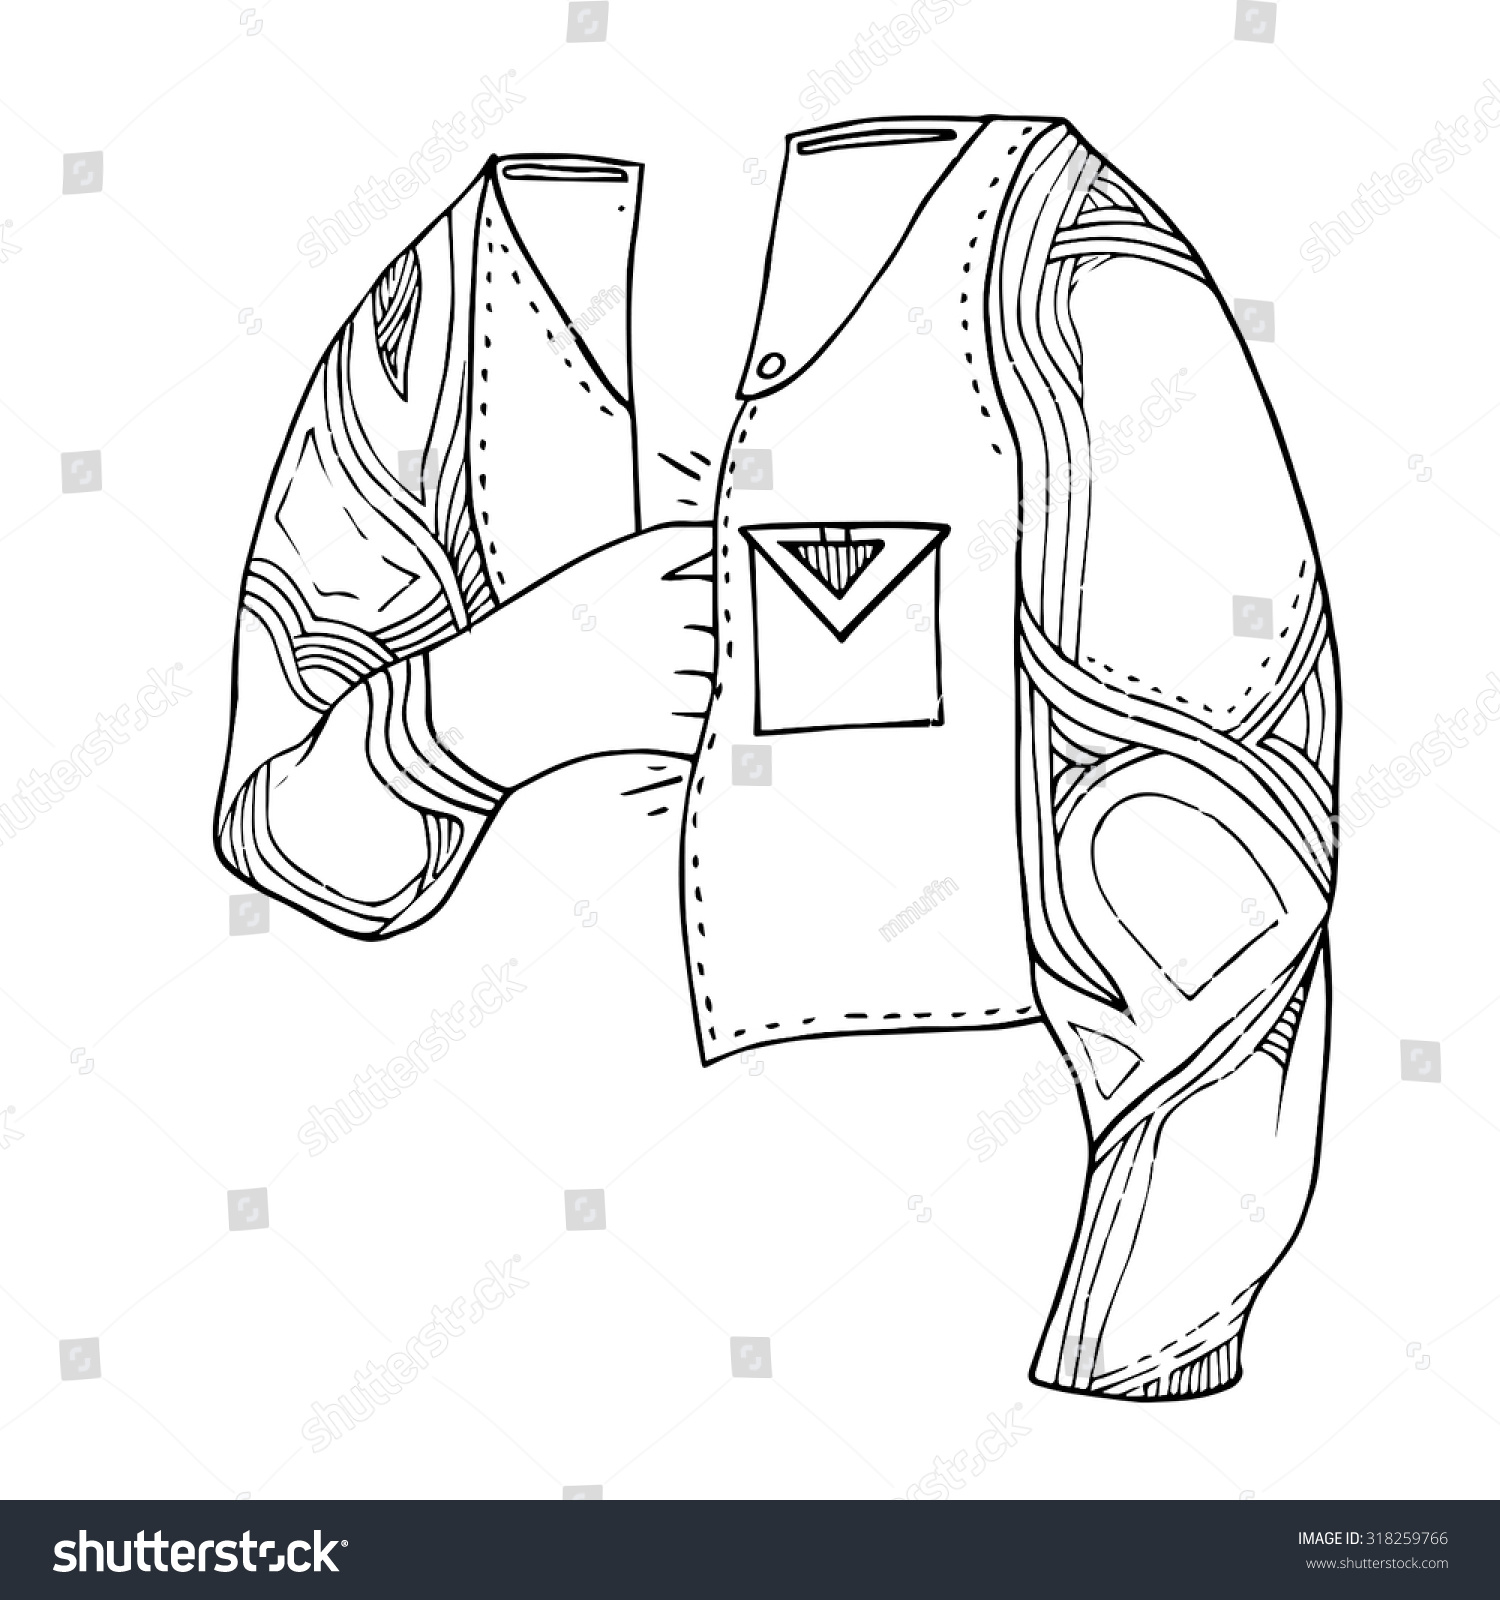 Drawing Lines In Photo Elements : Pocket hand jacket line lines artwork stock vector